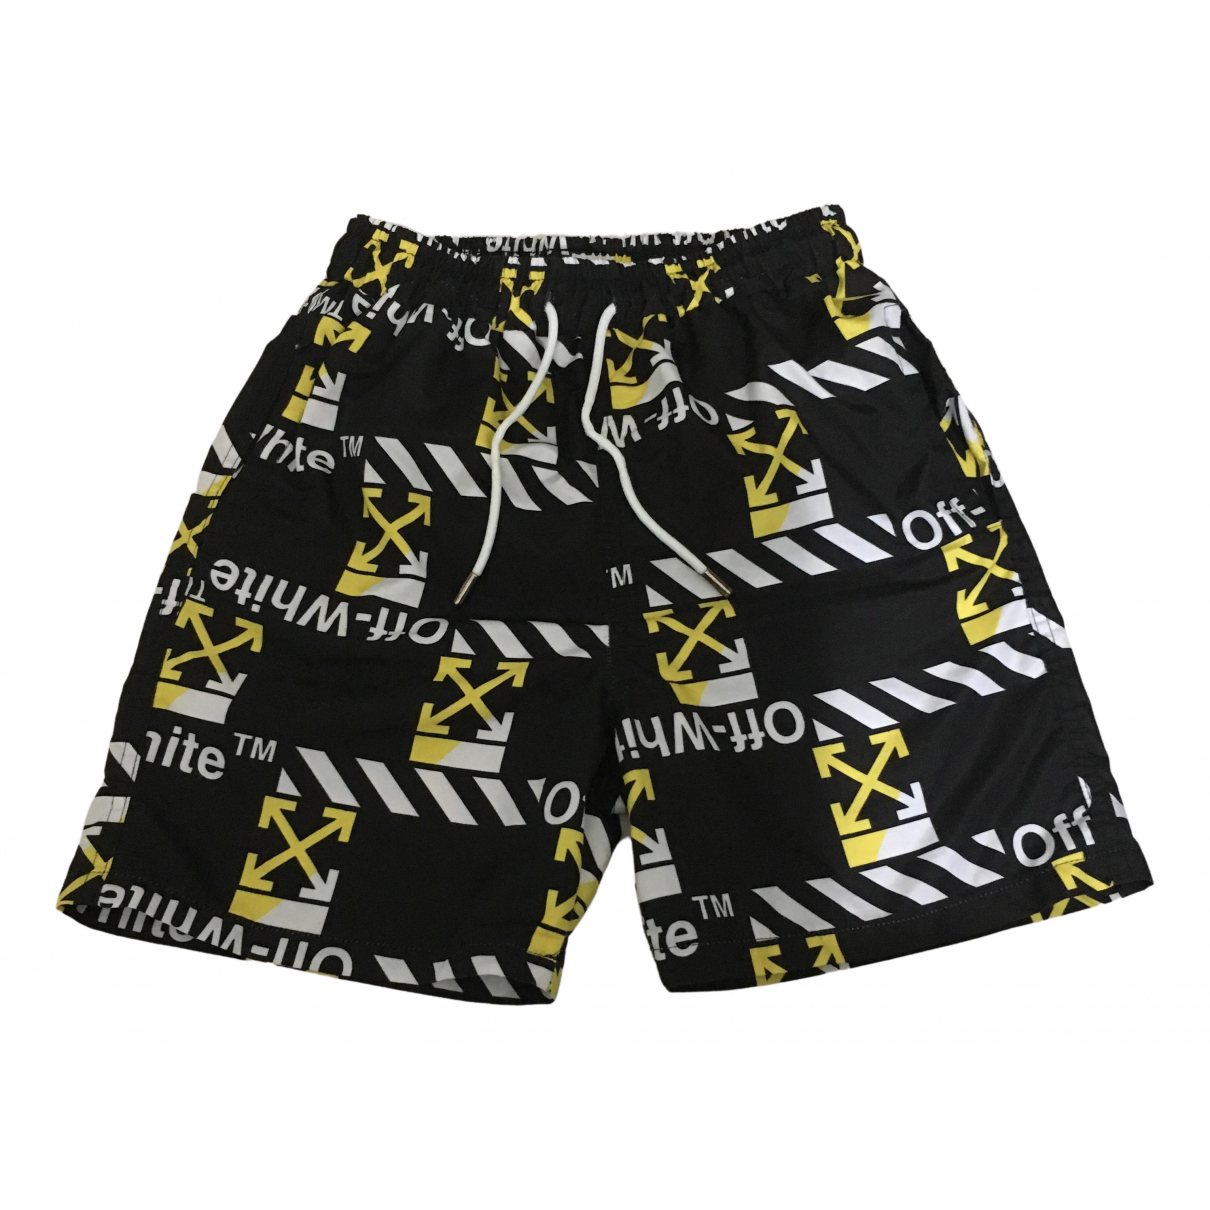 Off-white N Shorts for Kids 12 years - XS FR